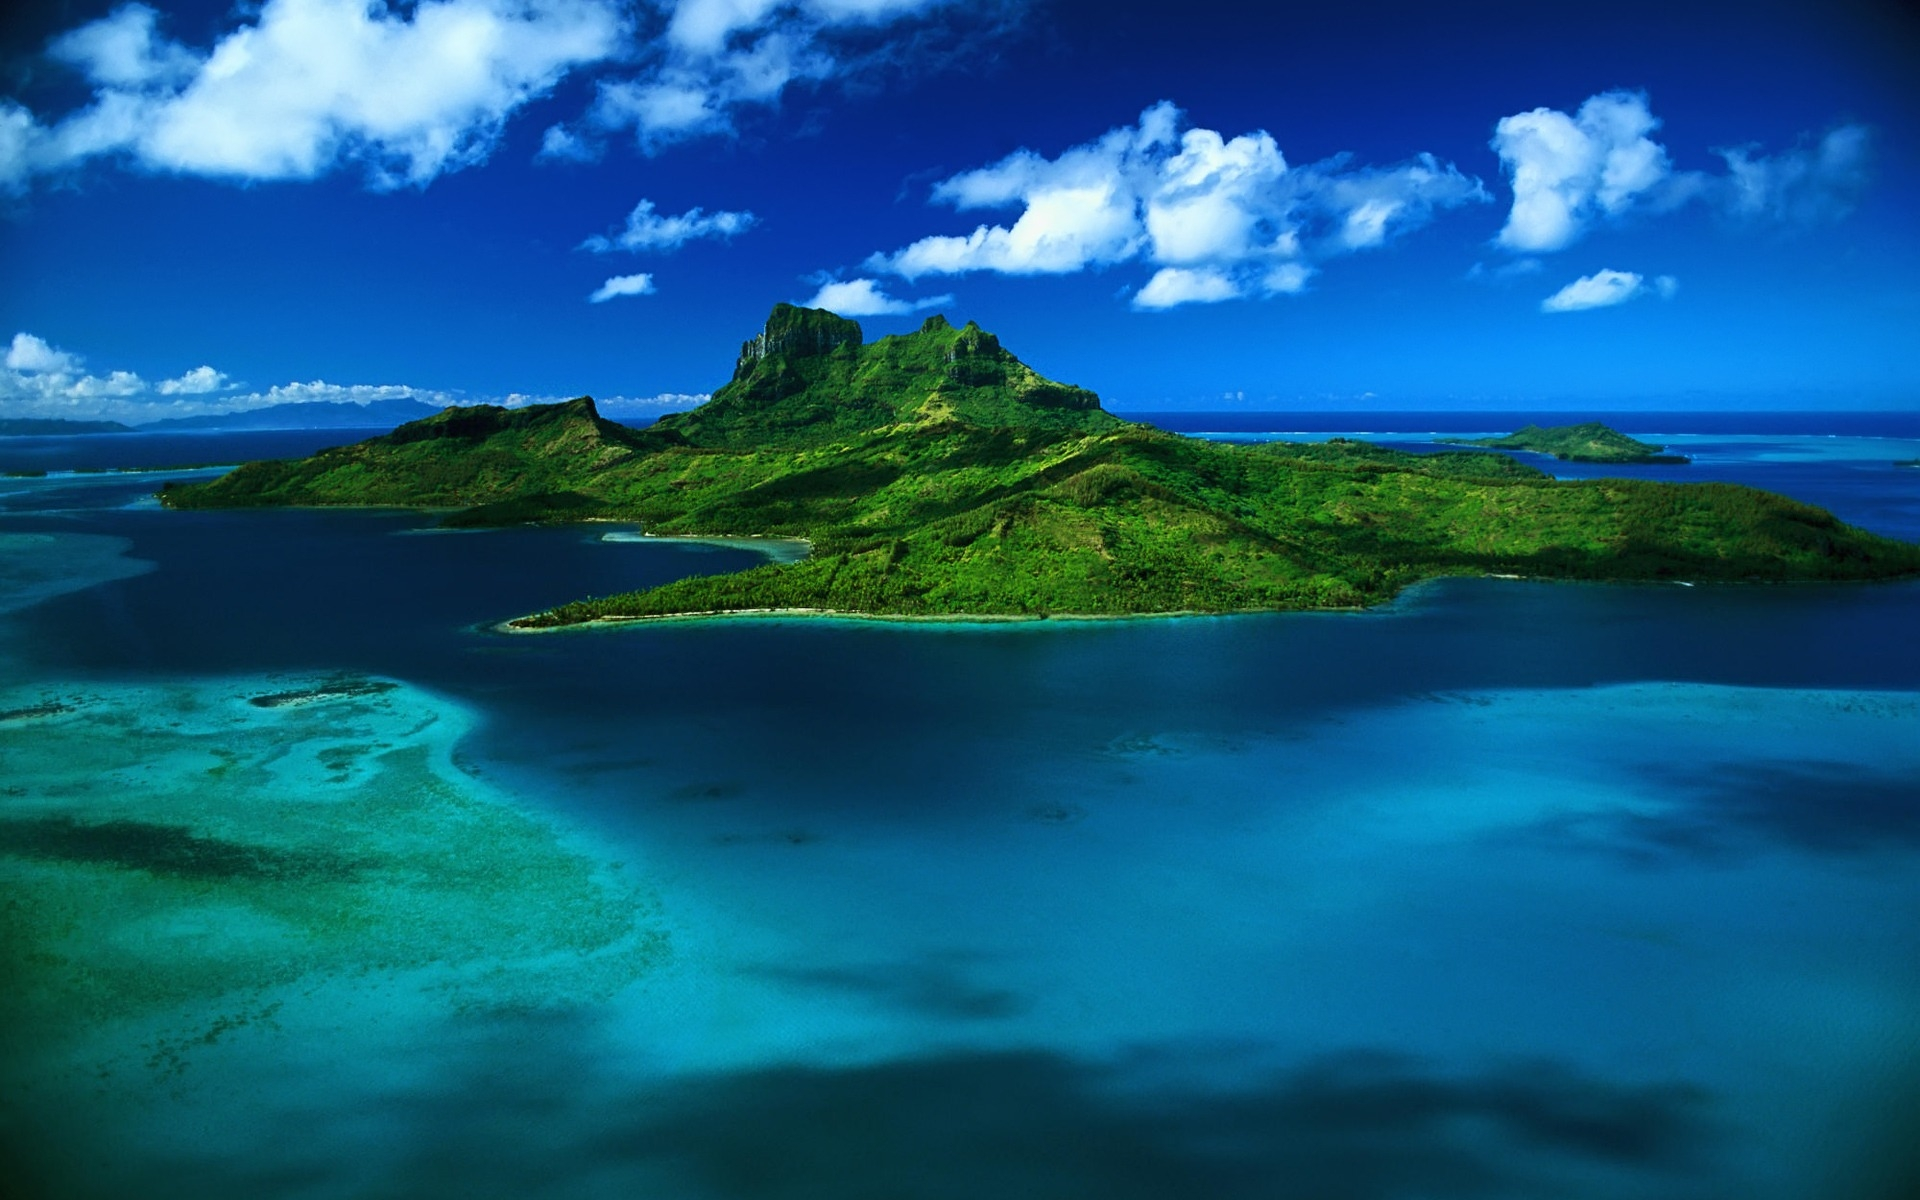 Tropical Island Background Images & Pictures - Becuo